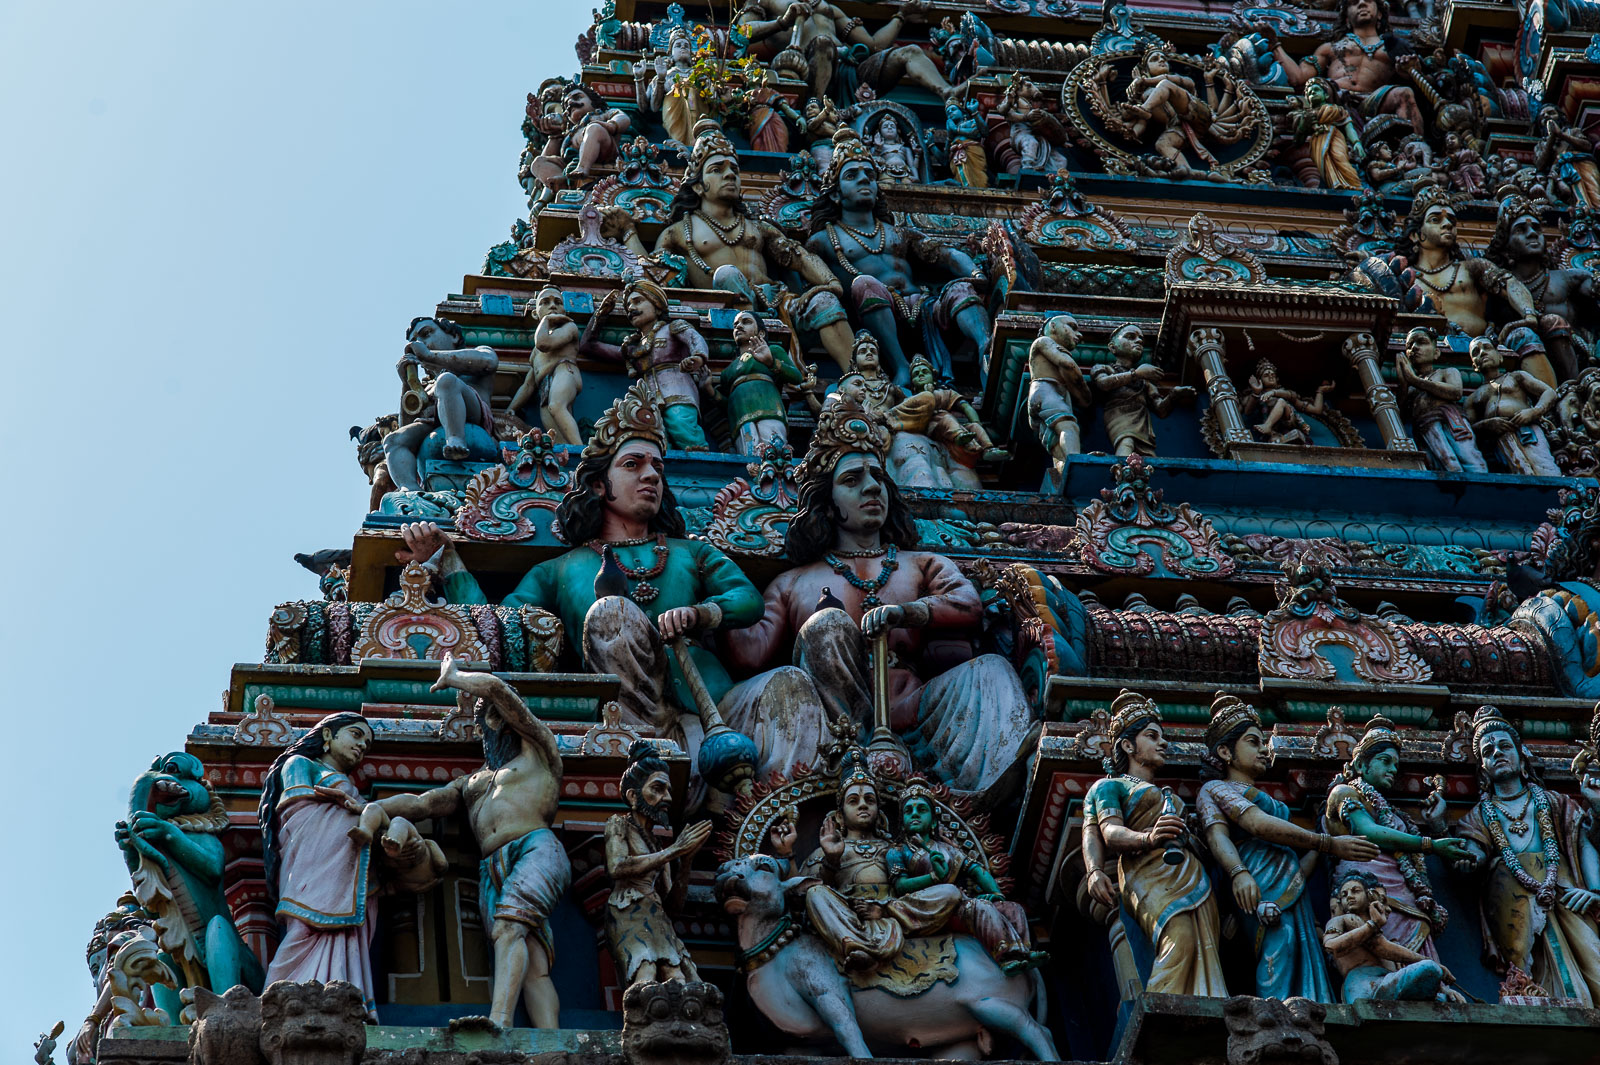 Details of a Temple in Chennai